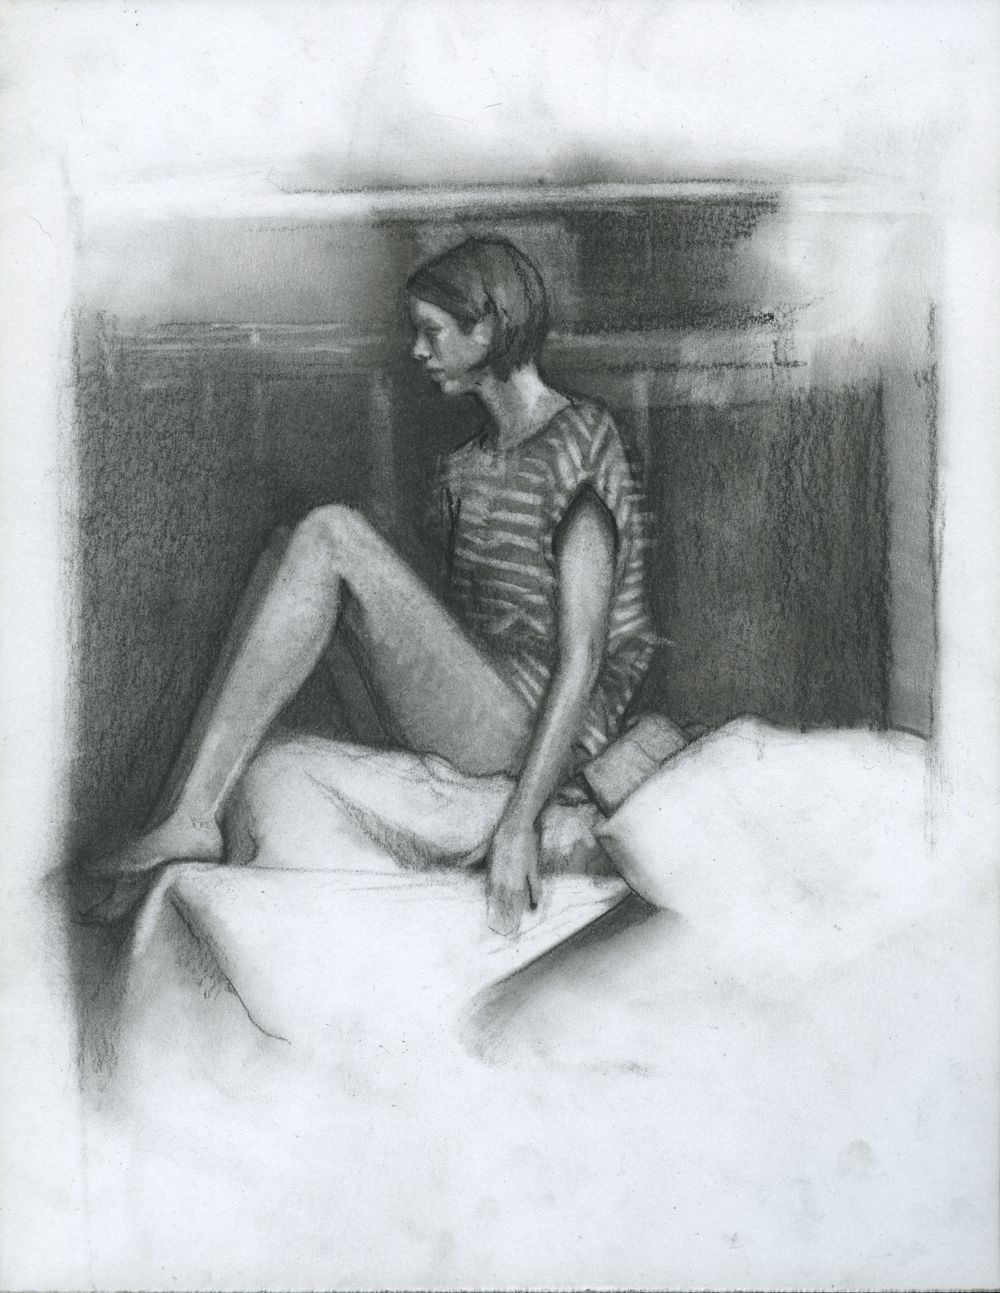 """Dramatic Convention, charcoal on paper, 11"""" x 8.5"""", 2014"""